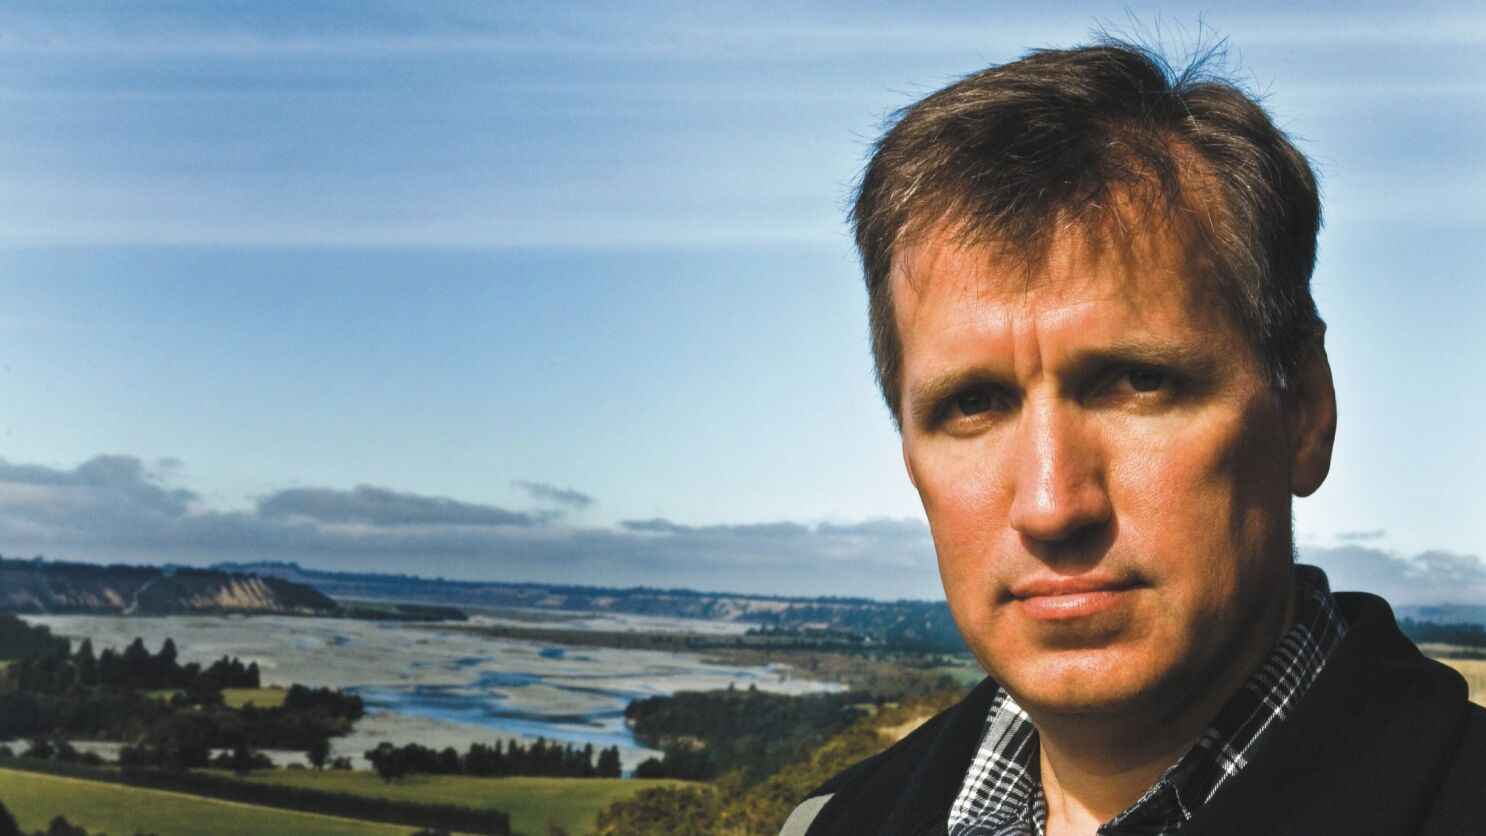 In 'Crucible,' James Rollins looks at the future and where